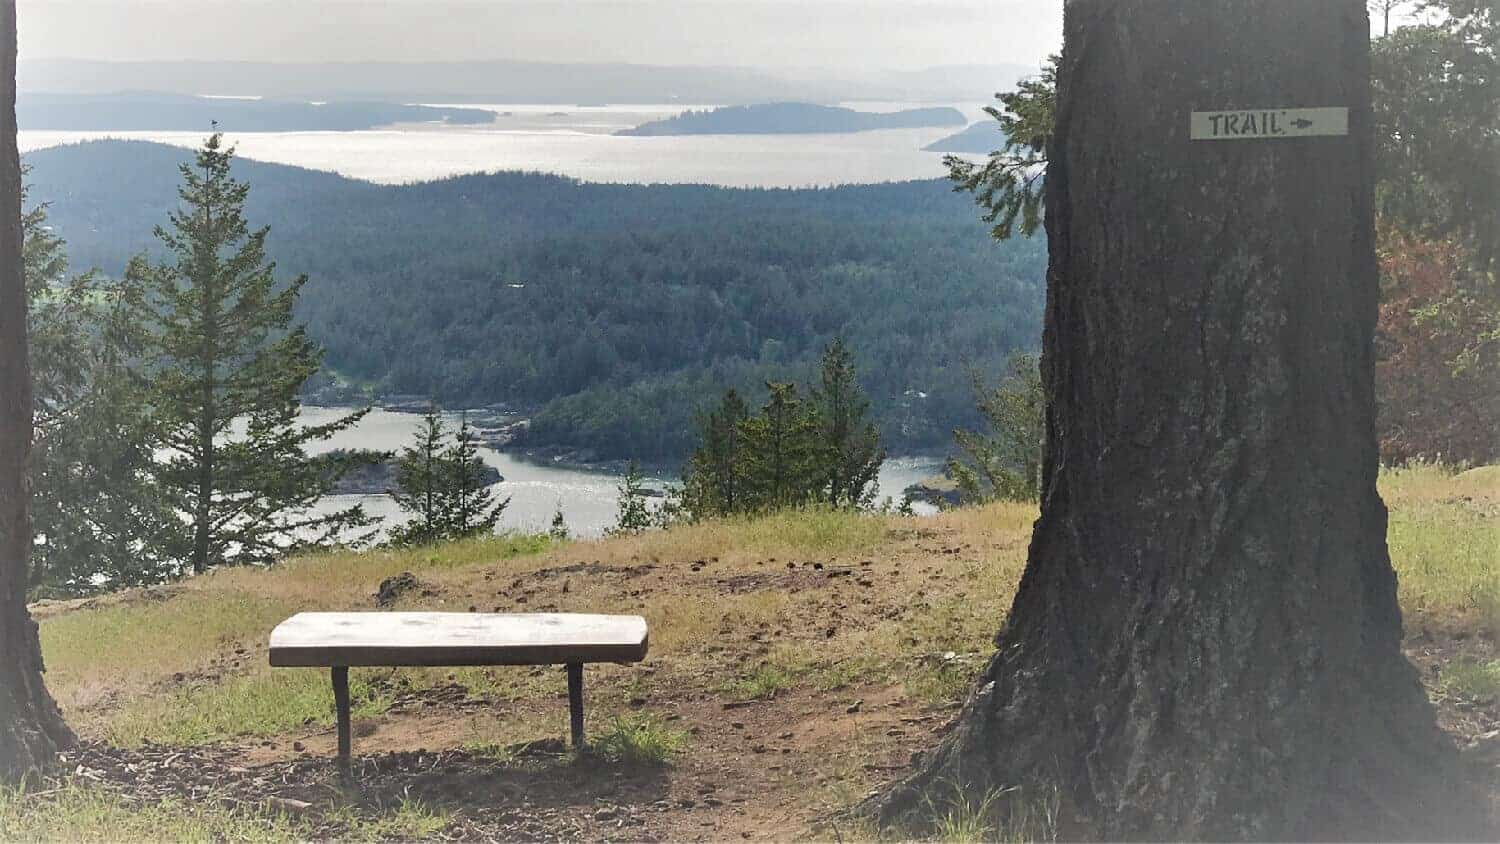 Pacific Northwest Travel Blog ⋆ Pacific Northwest and Beyond